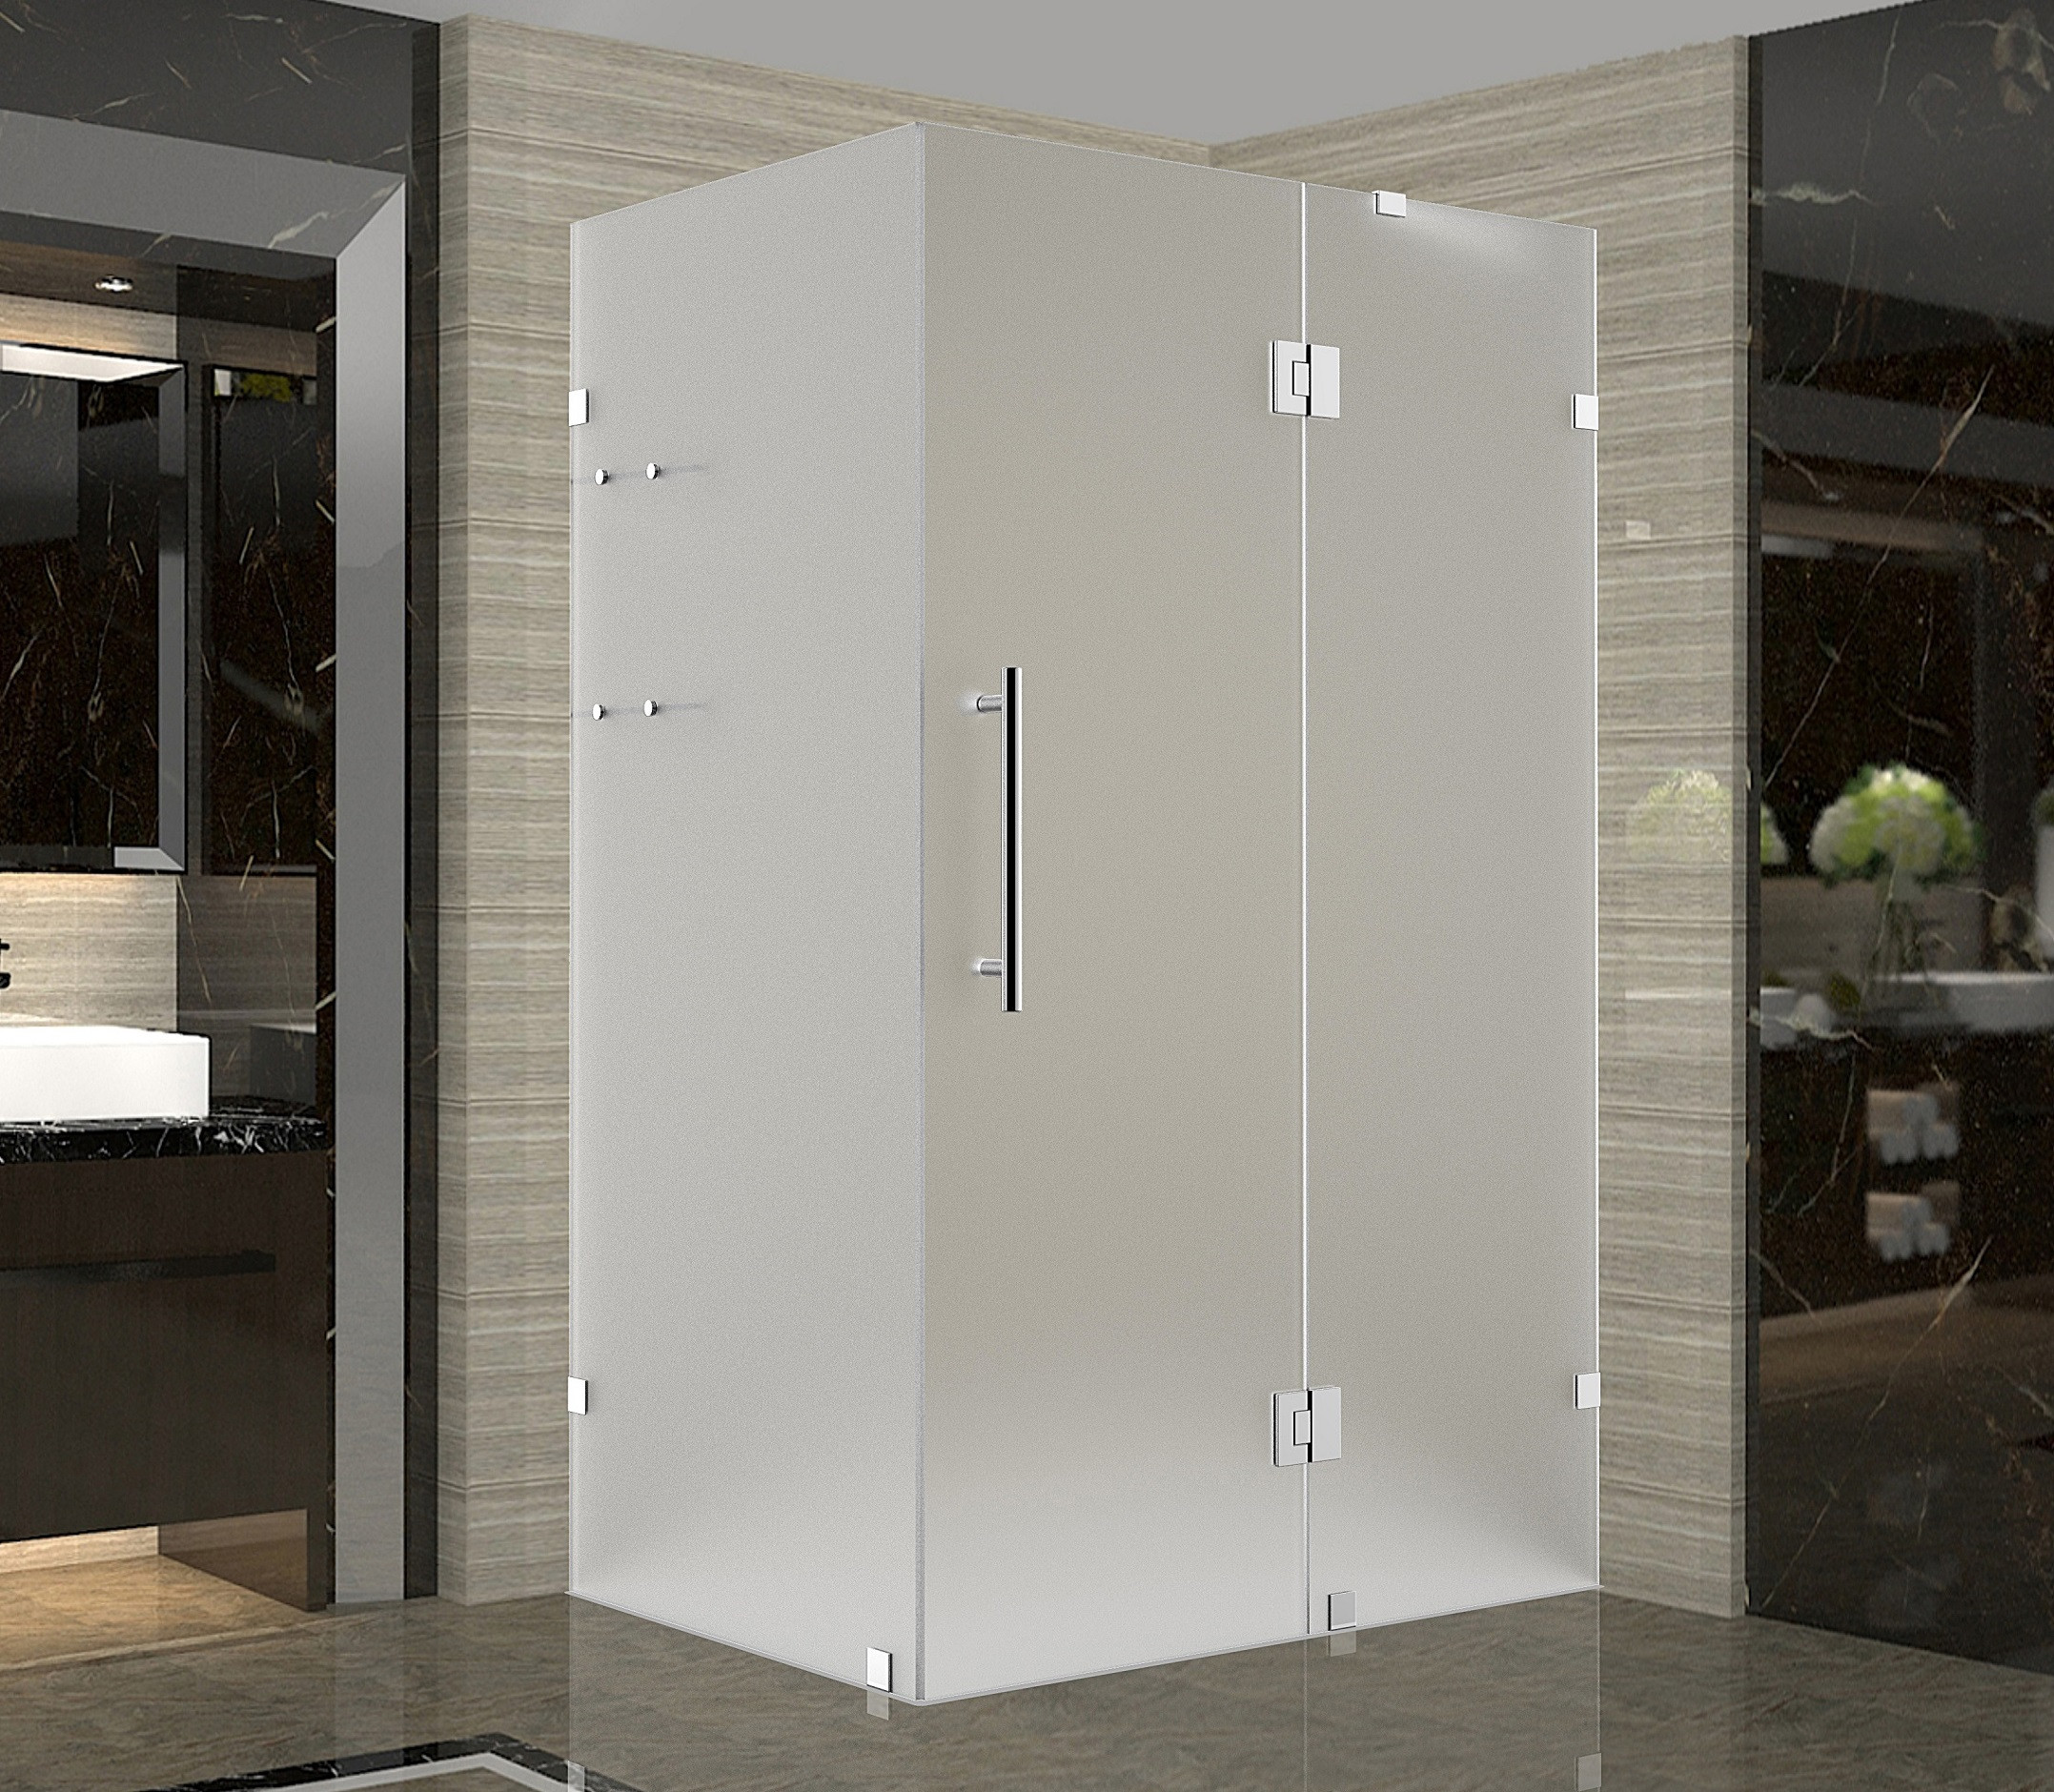 Aston Global SEN992F-CH-3336-10 Chrome Completely Frameless Frosted Shower Enclosure with Shelves